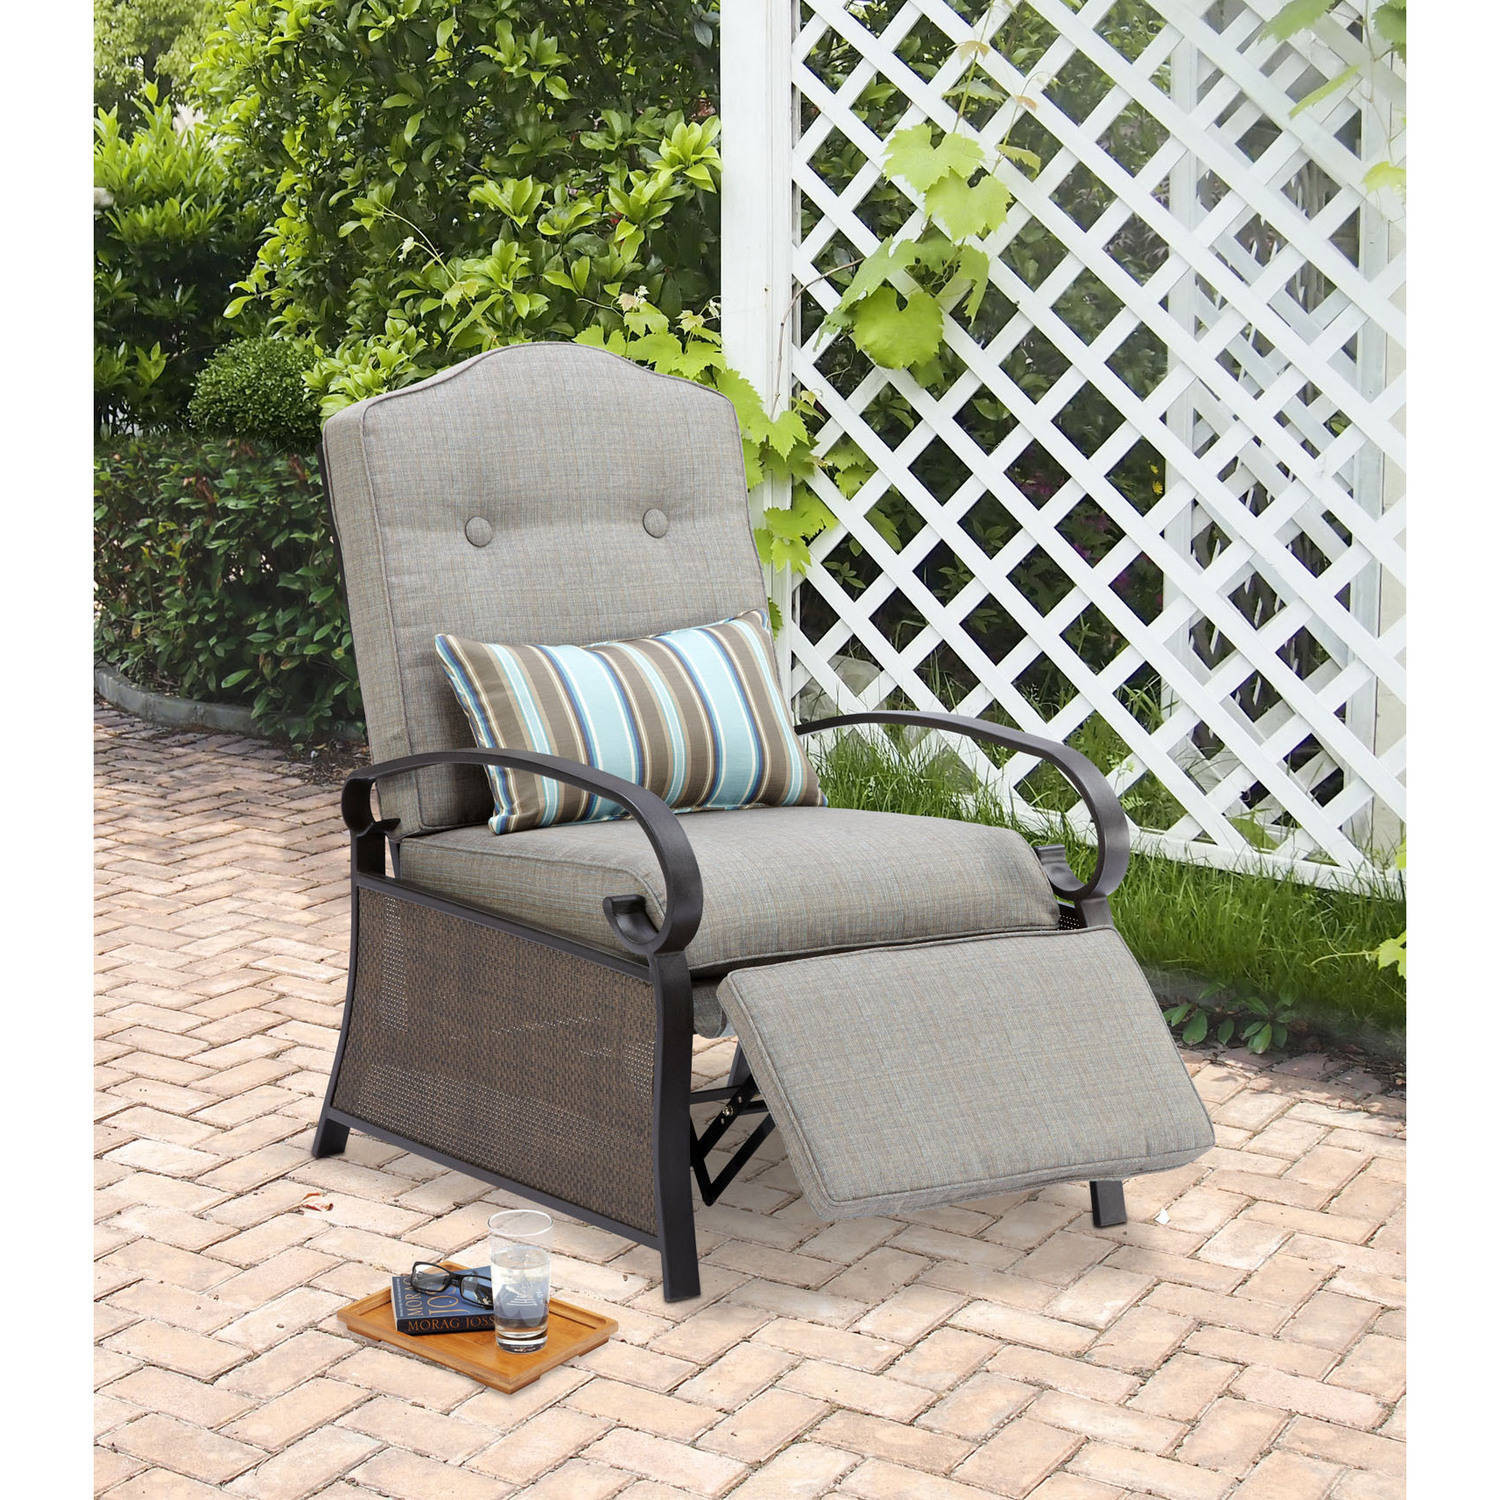 Best ideas about Patio Furniture Walmart . Save or Pin Patio Furniture Walmart Outdoor Sets Clearance Cheap Now.